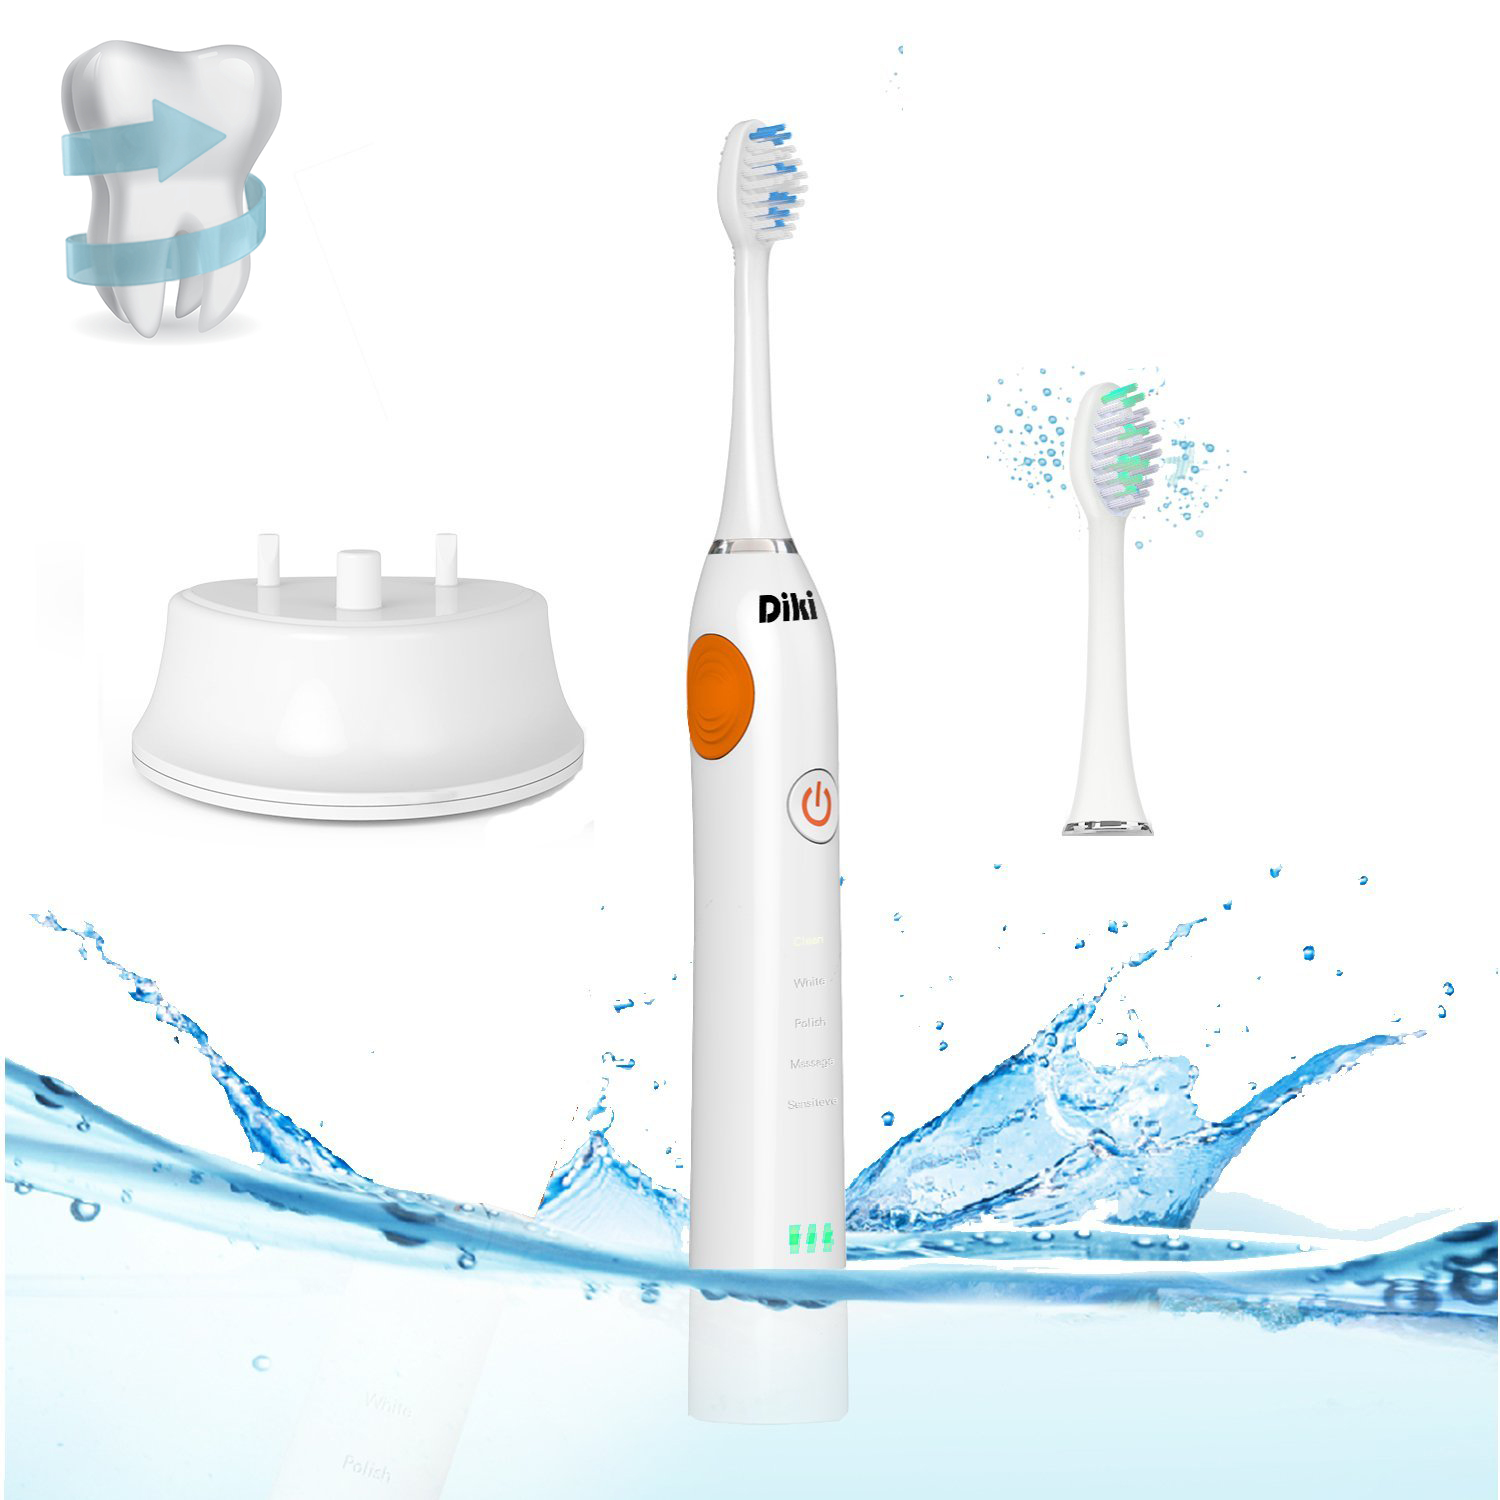 Electric Toothbrush DIKI 2 Minutes Timer 5 Modes Rechargeable Adaptive Clean Brush Head Remove Plaque Clean Gums Travel IPX 7 Waterproof Toothbrush